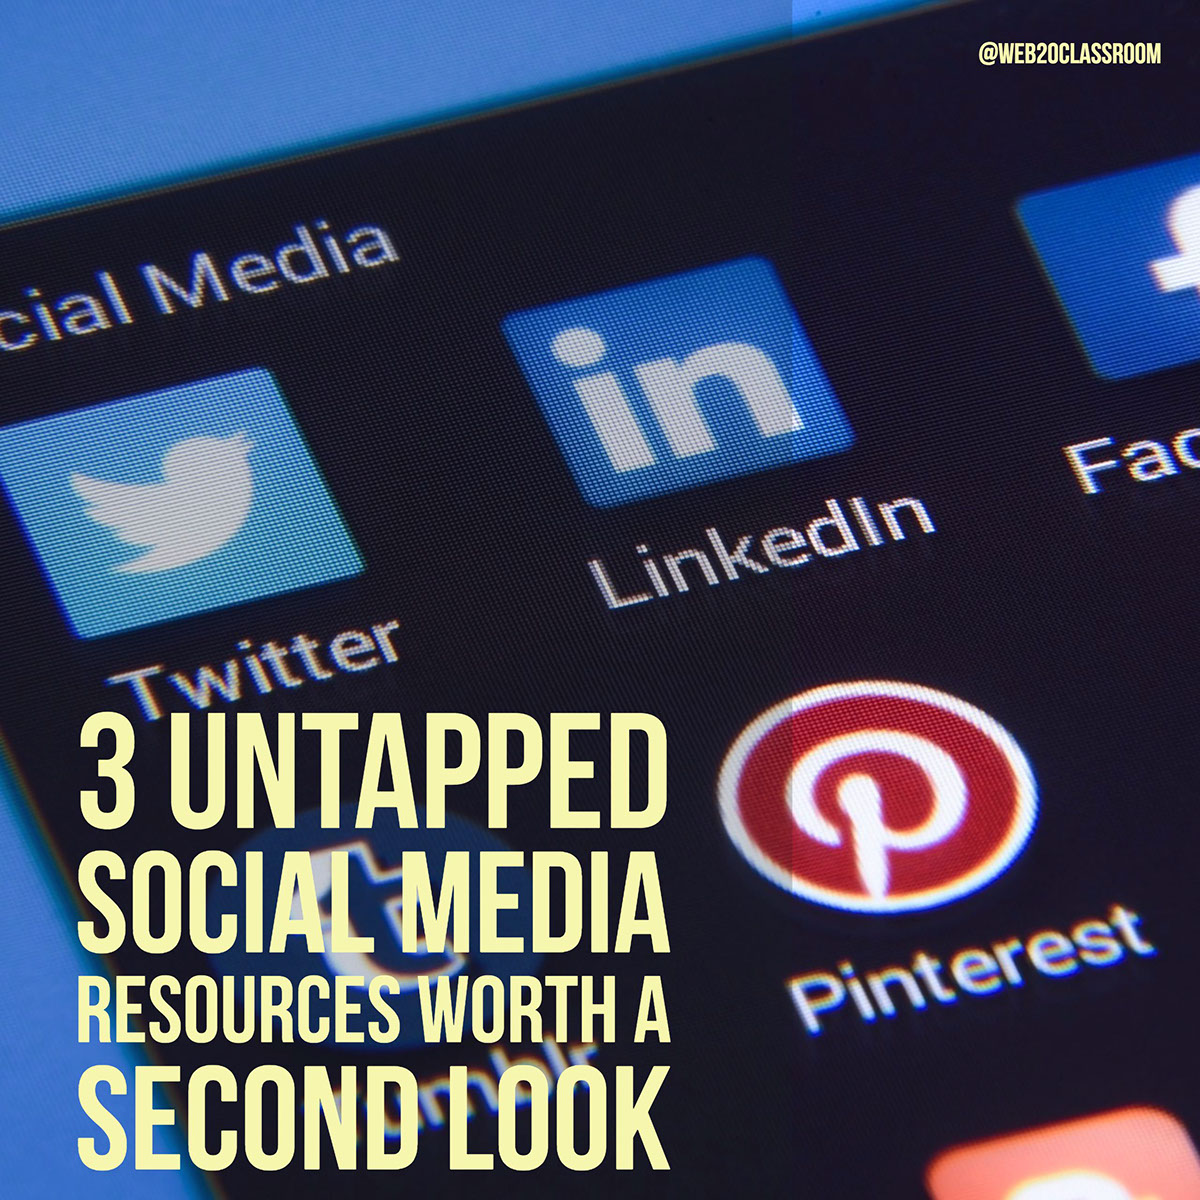 3 Untapped Social Media Resources Worth A Second Look